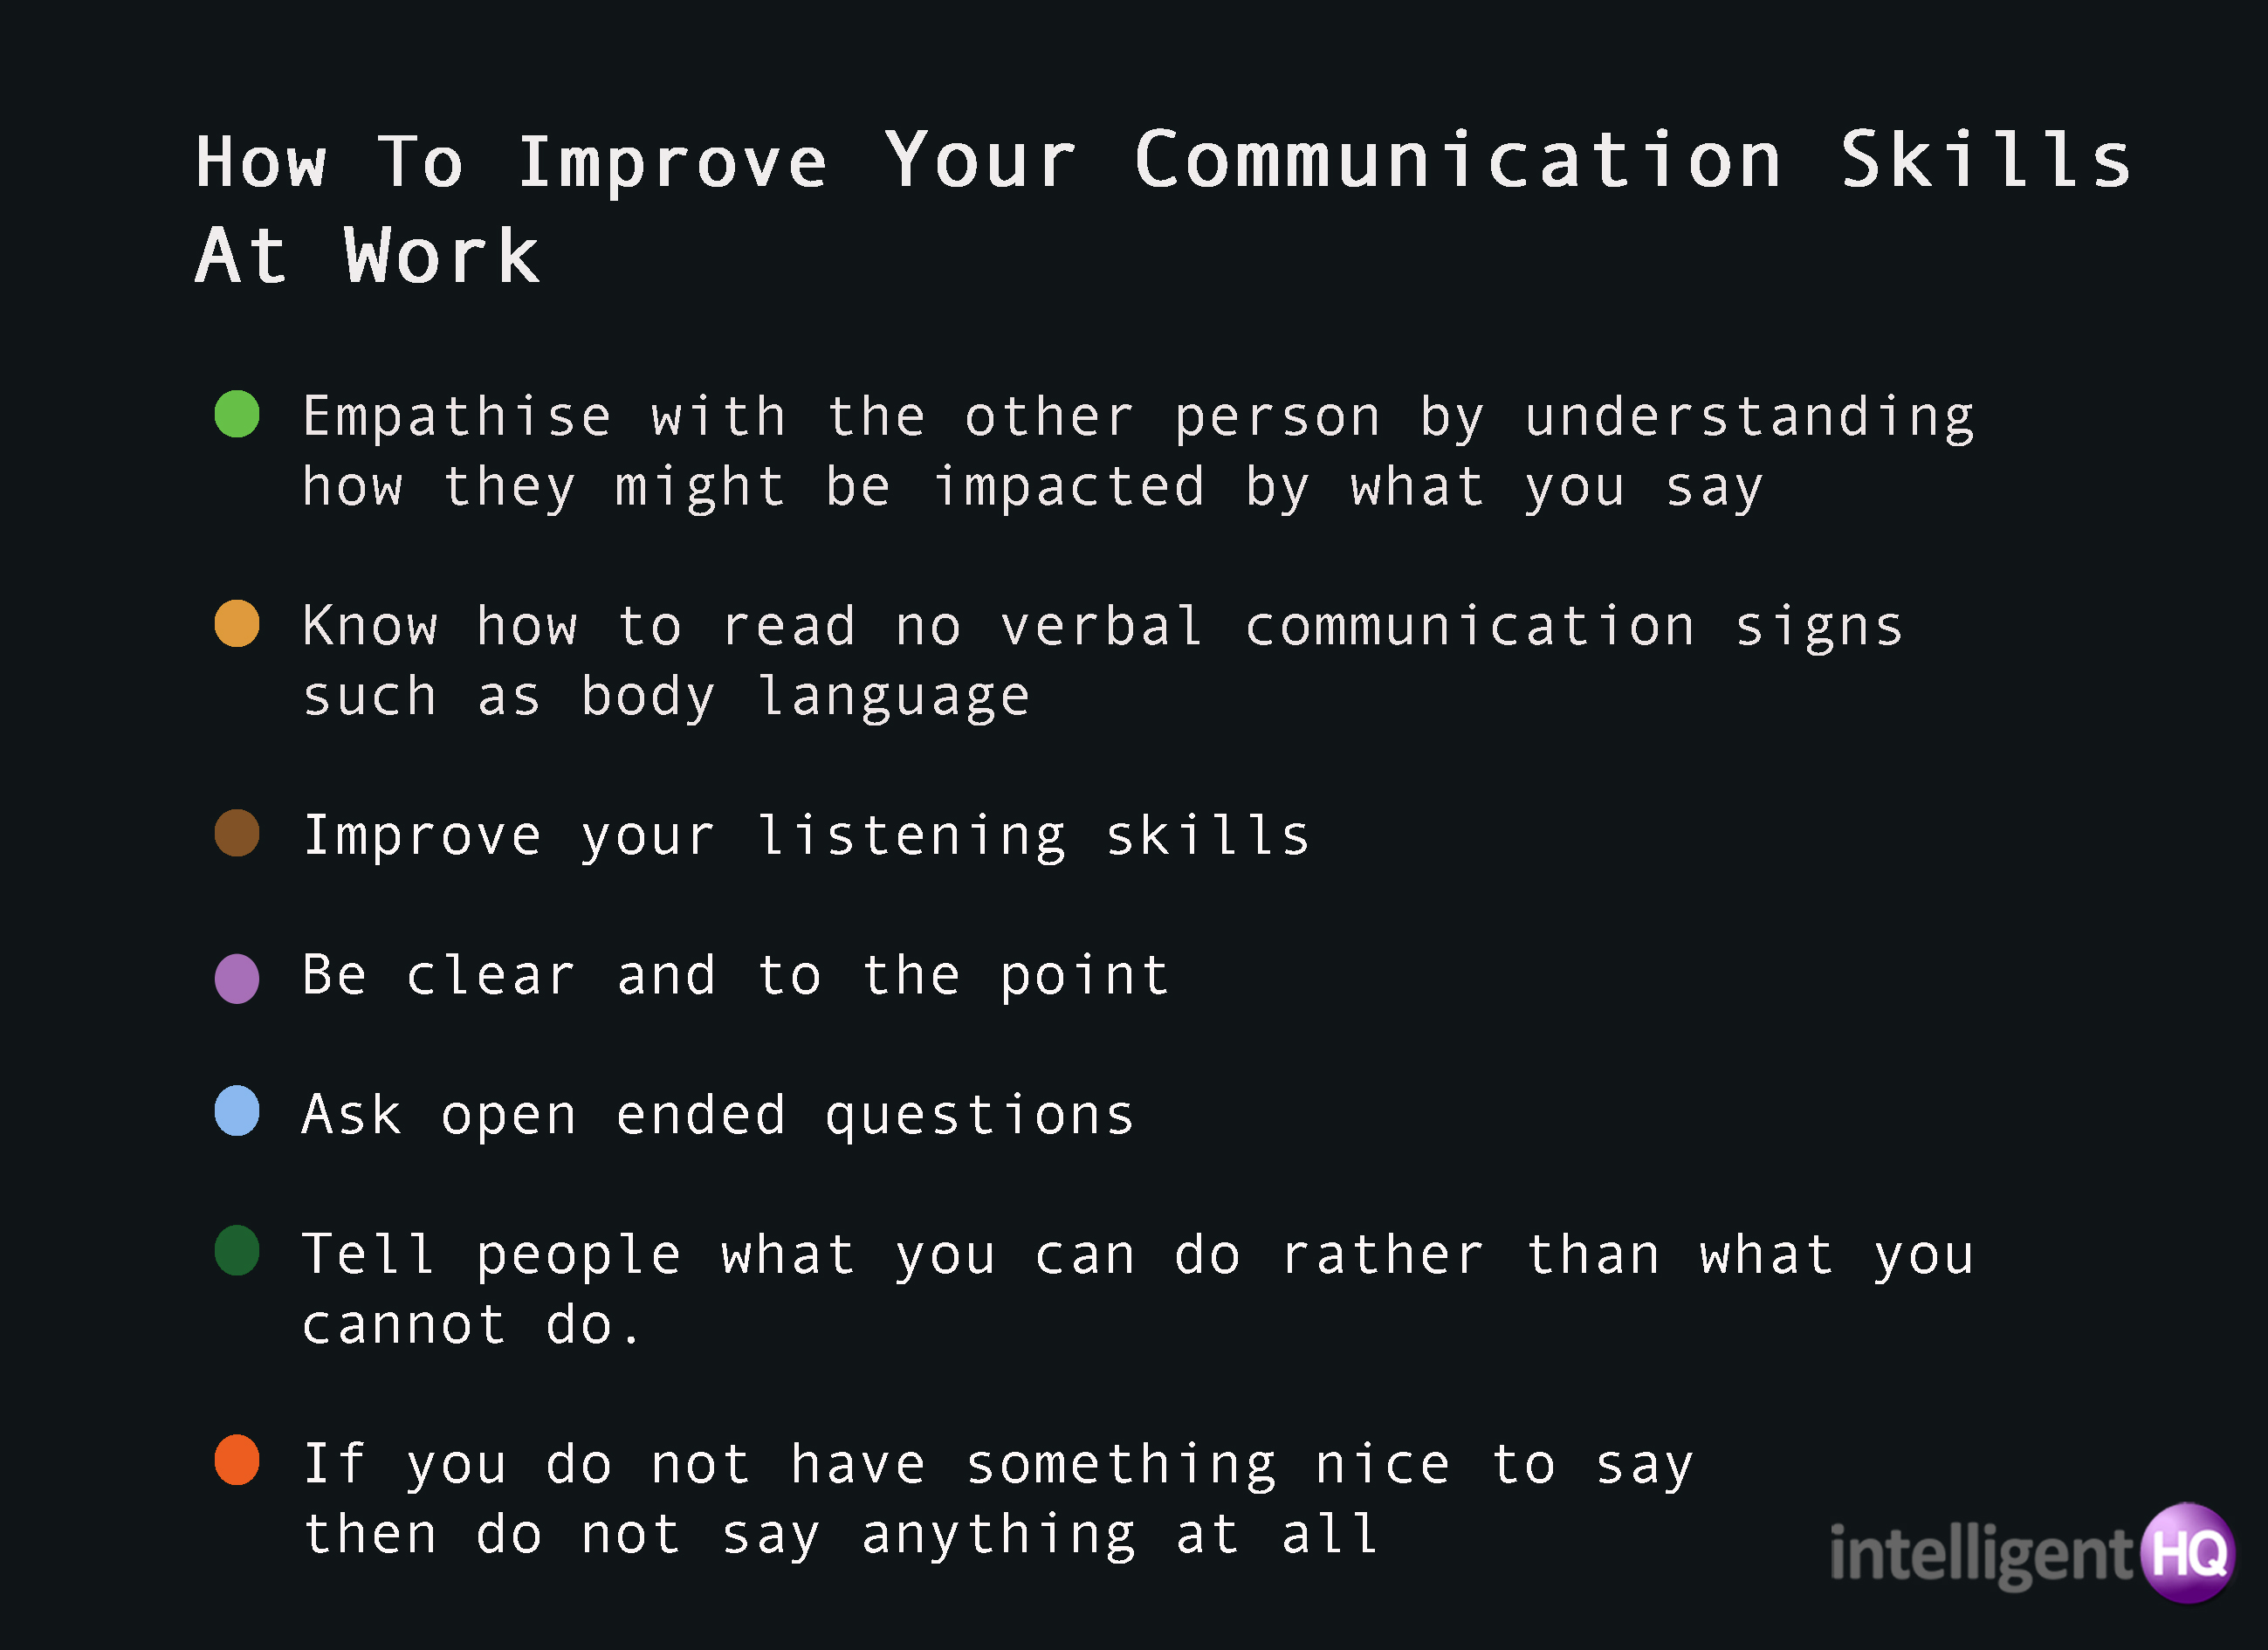 7 ways to improve your communication skills Intelligenthq